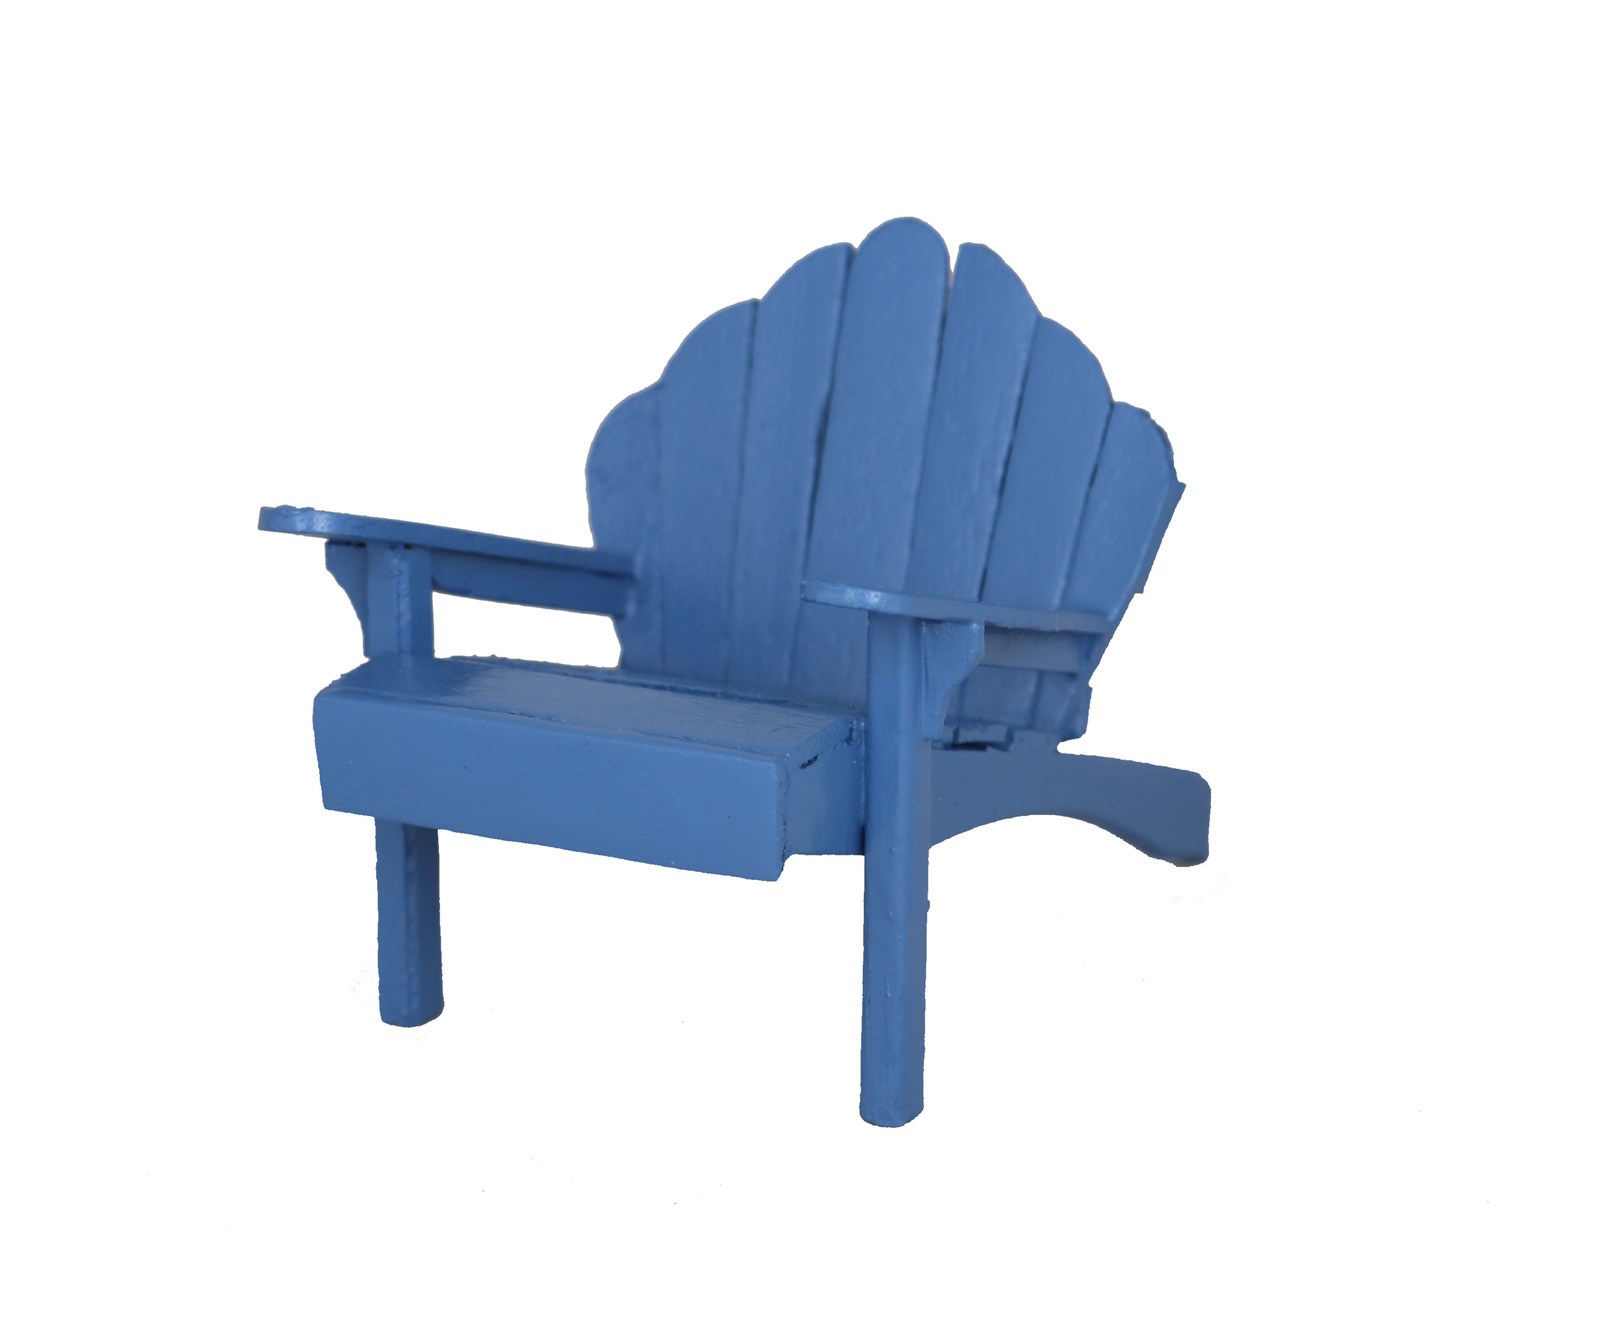 Mini Adirondack Chairs Miniature Adirondack Chair Garden Artisans Llc